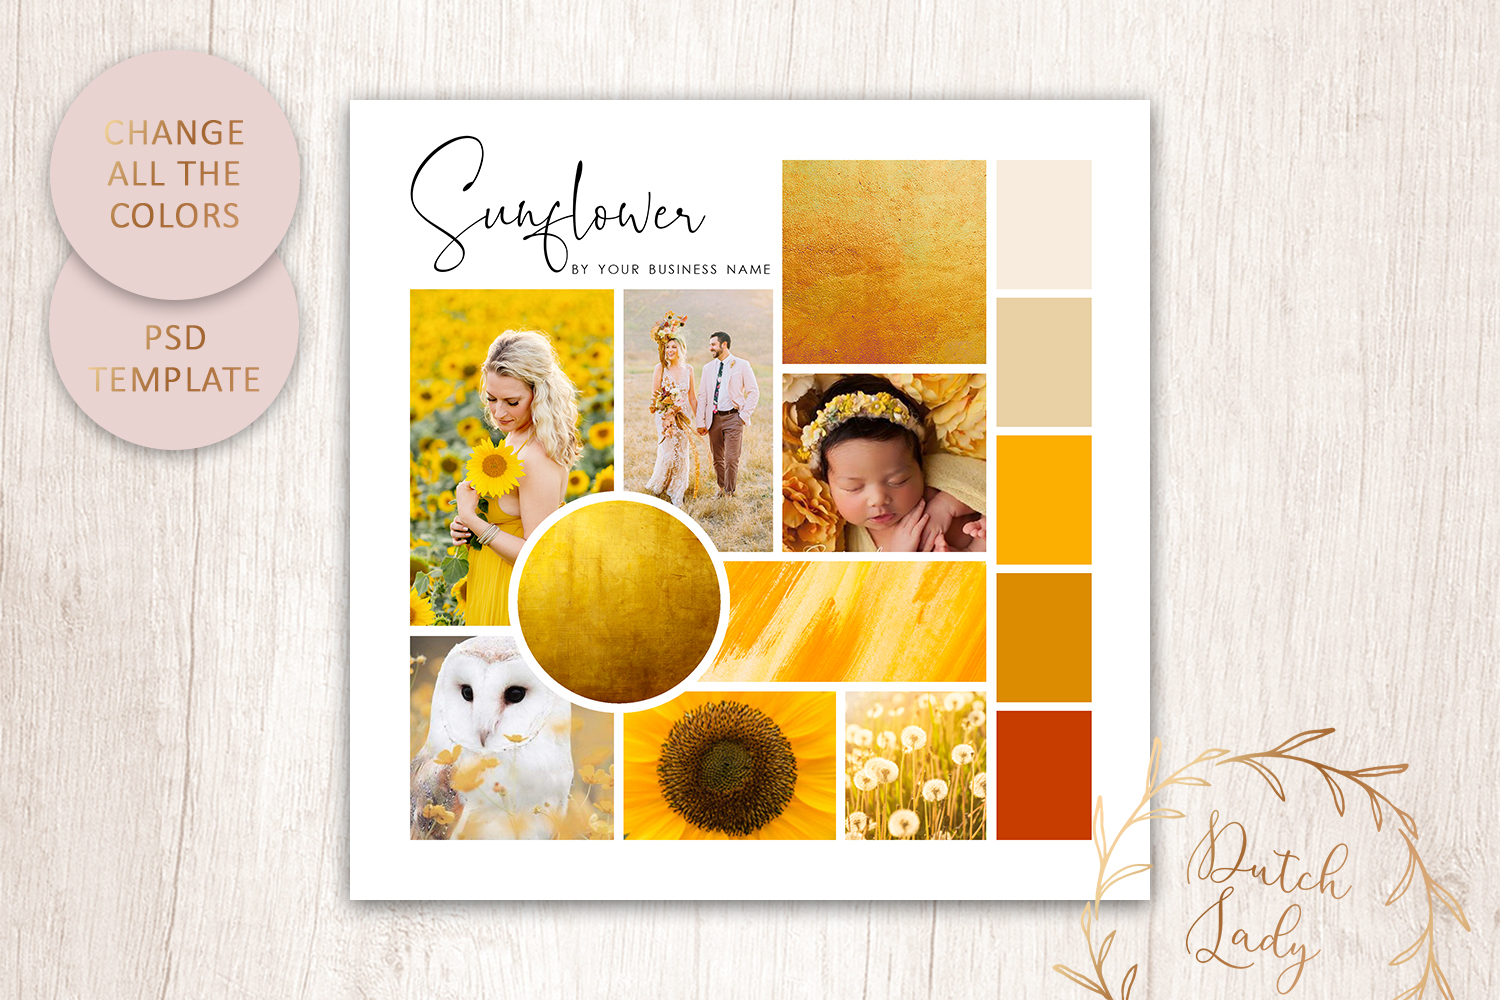 PSD Mood & Vision Board - Adobe Photoshop Template - #9 example image 3